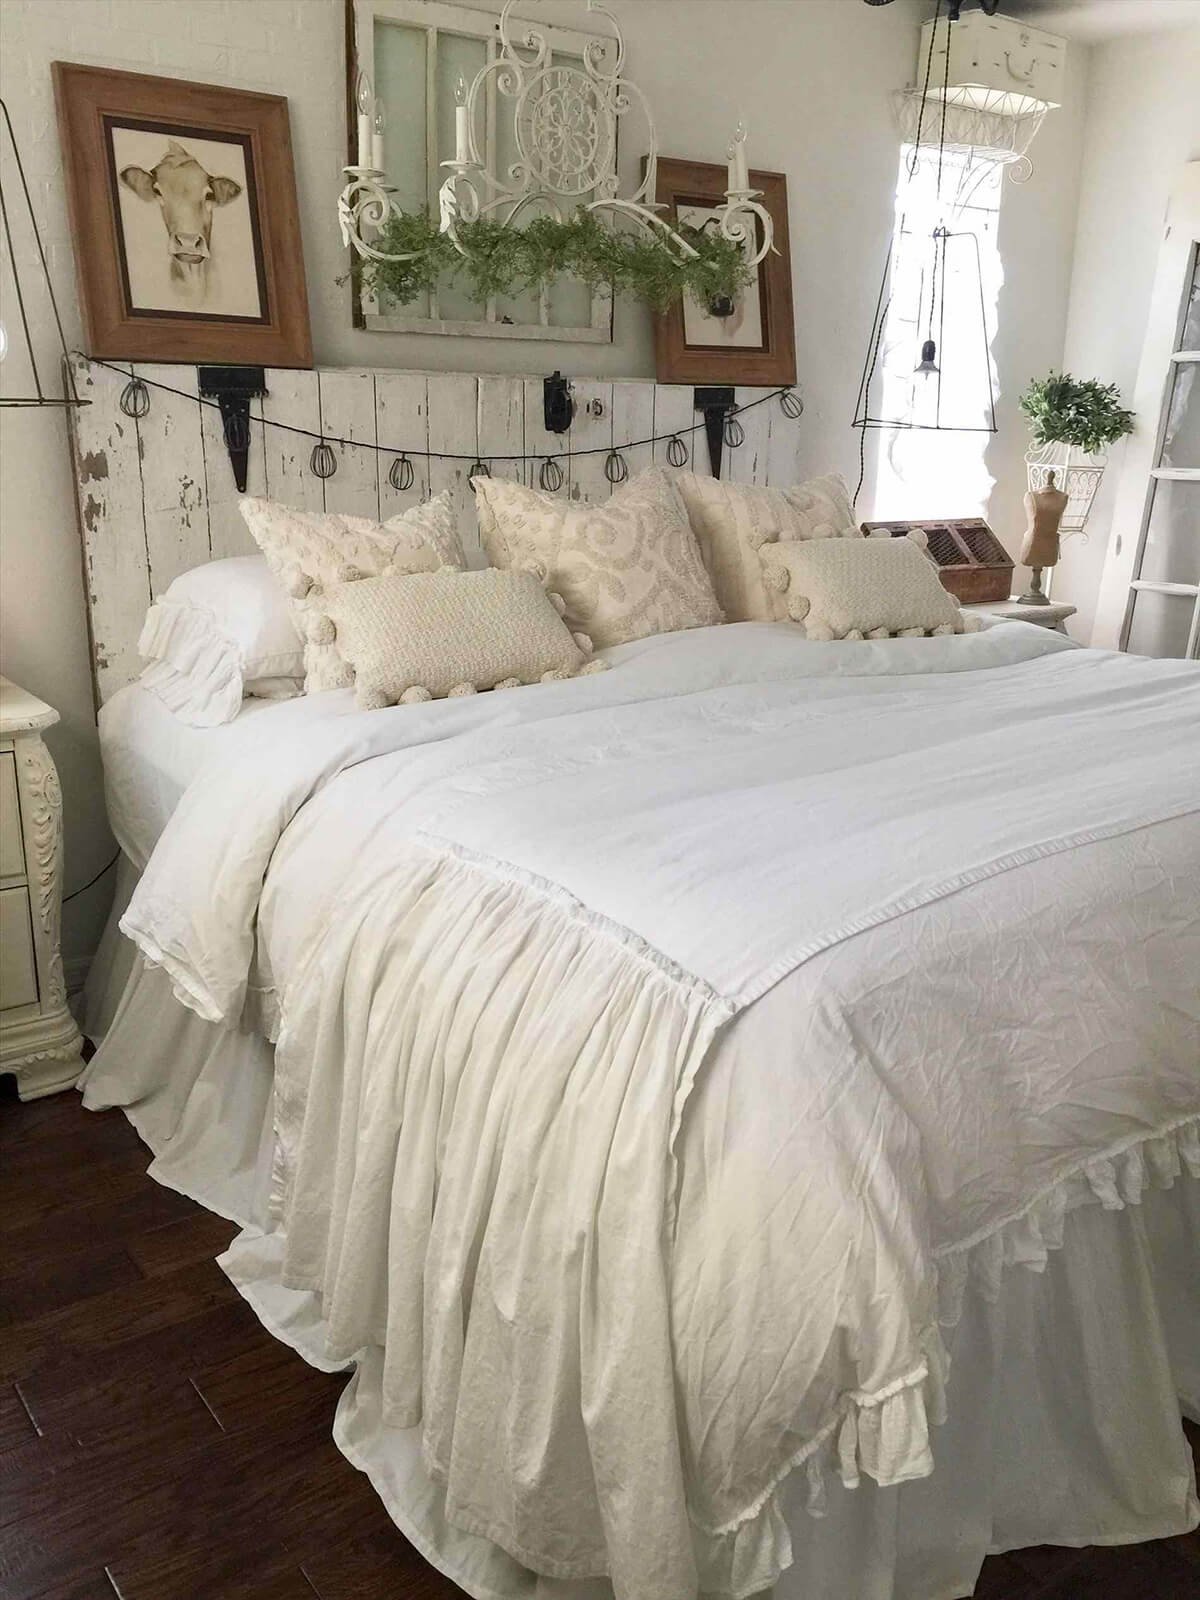 Layered White Bedding with Textured Pillows